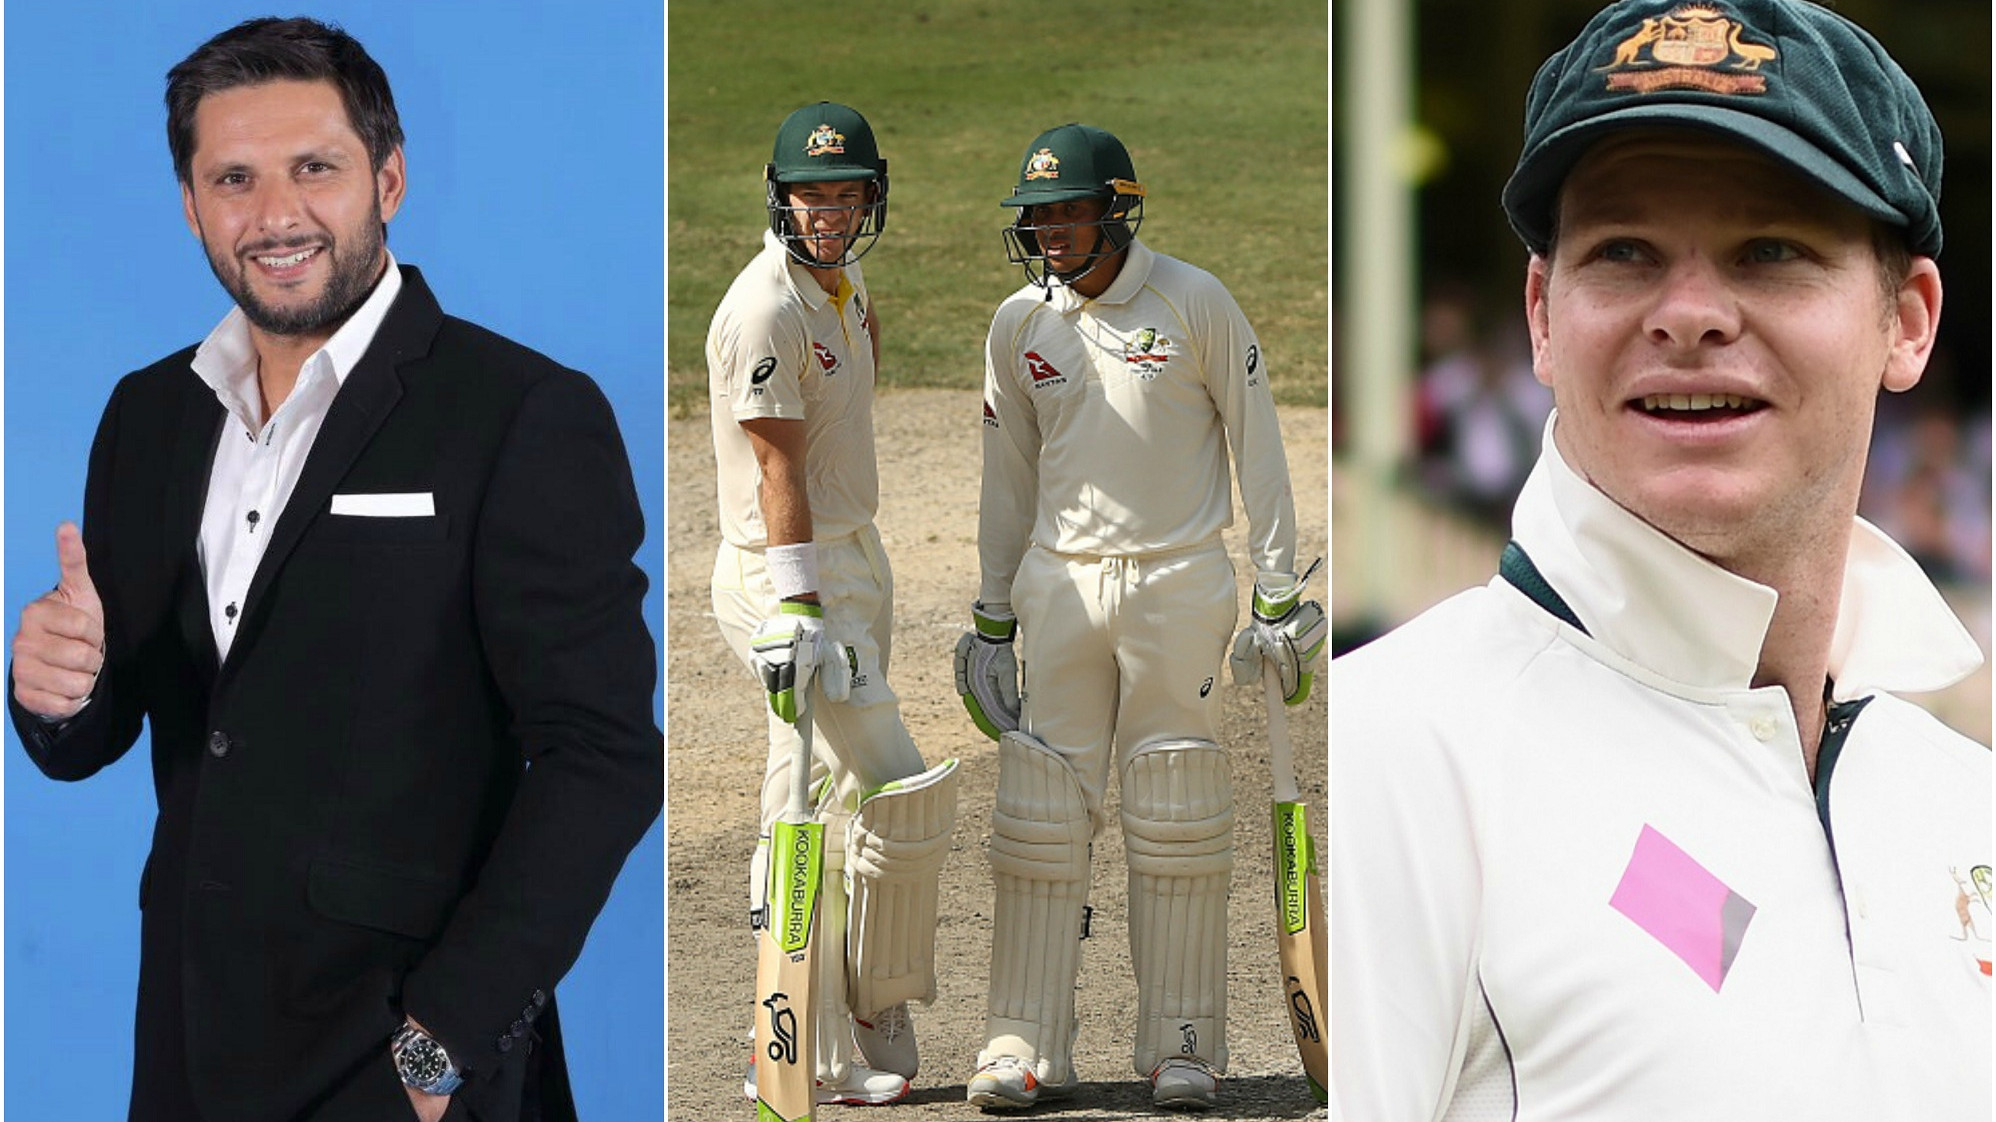 PAK v AUS 2018: Cricket fraternity lauds Khawaja and Paine as Australia escapes with a draw